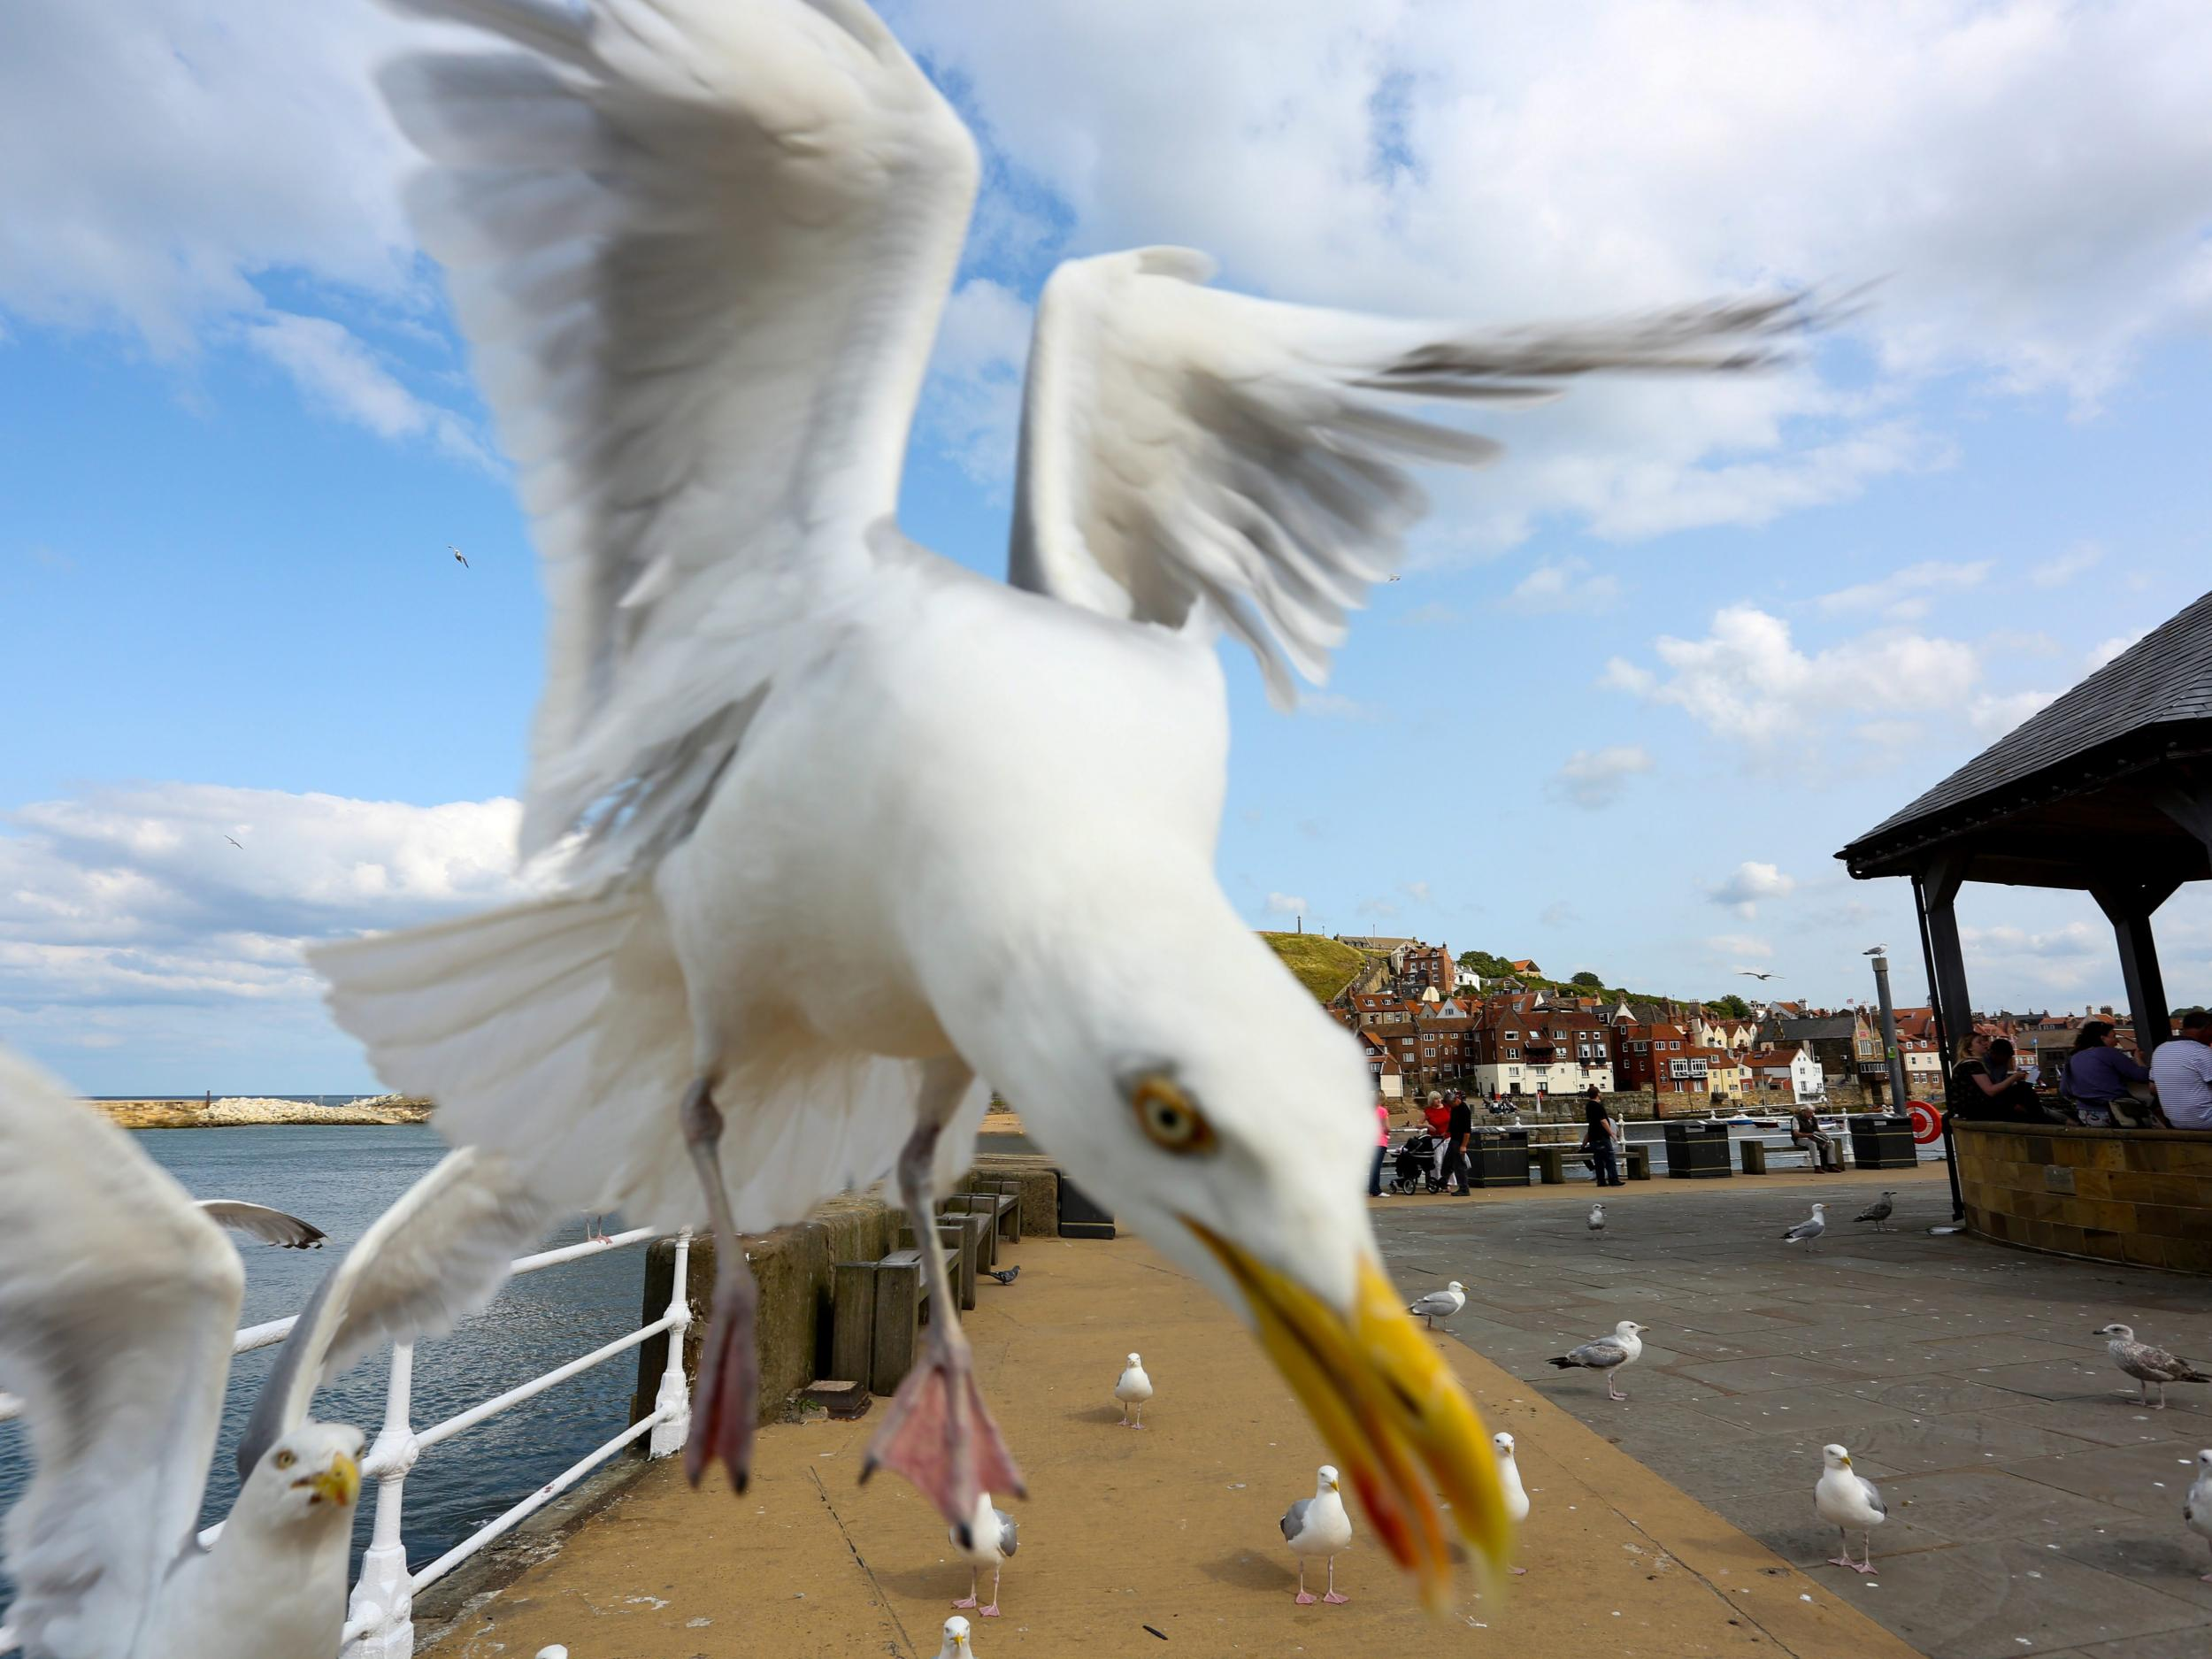 Man repeatedly kicked and stamped on seagull after it tried to steal his chip, prompting RSPCA appeal